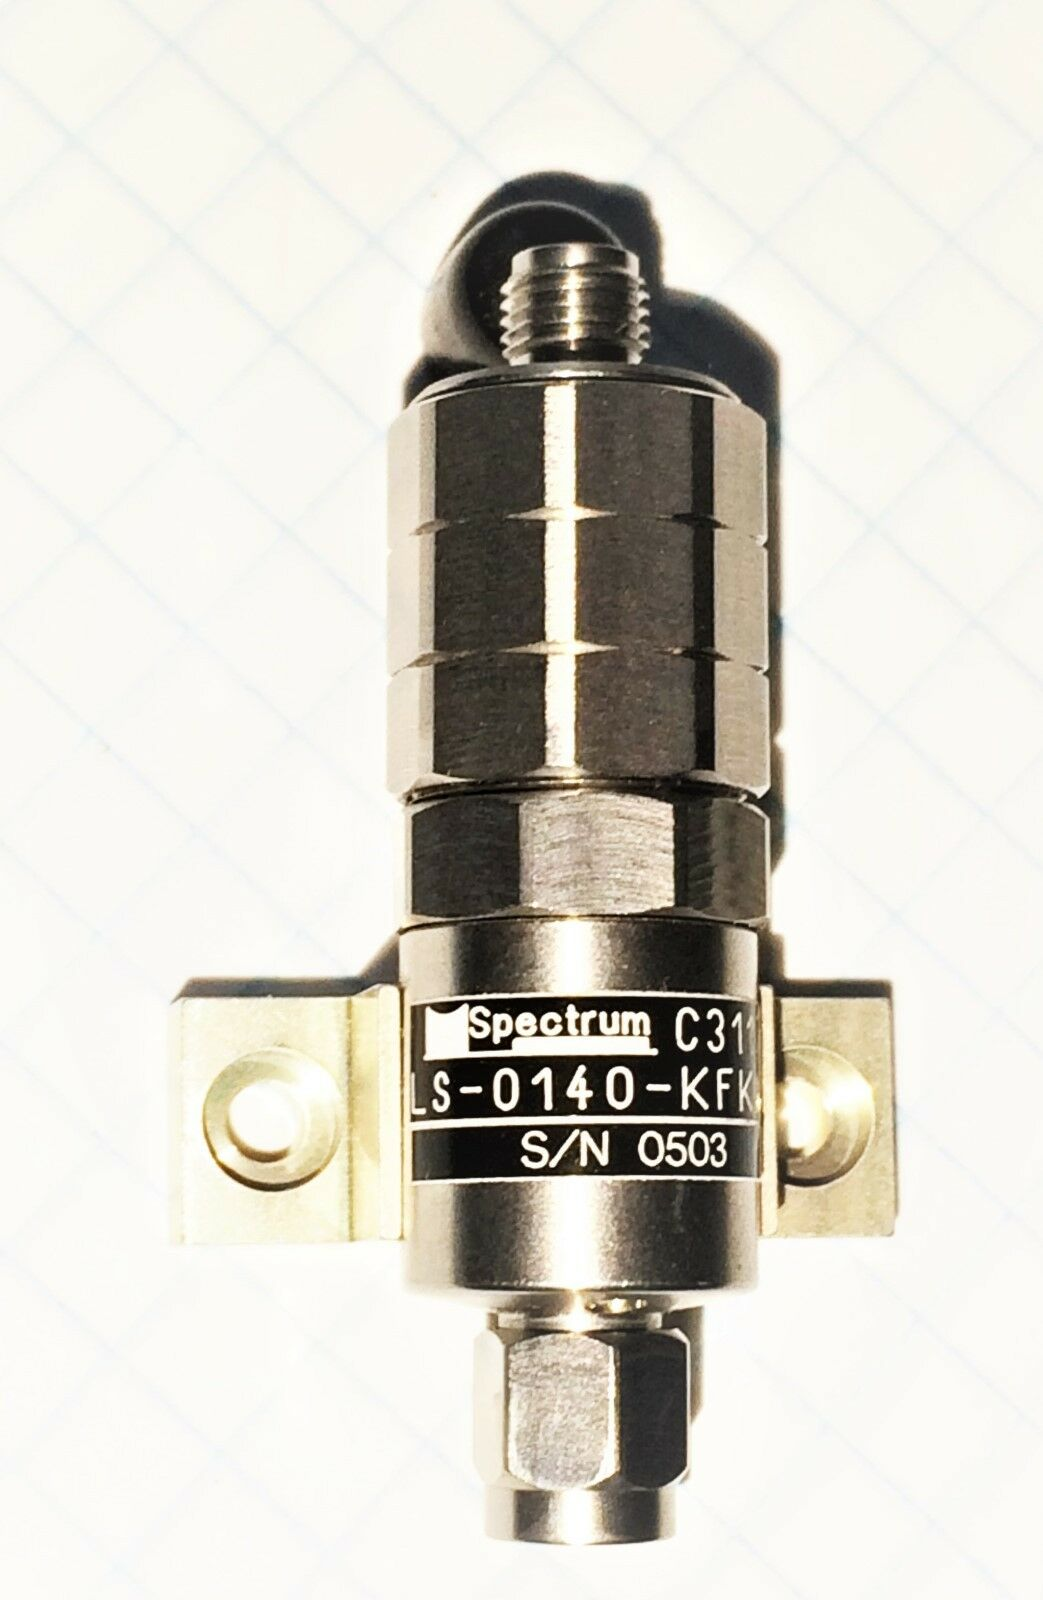 Spectrum Ls 0140 Kfkm Phase Adjustable Adapters Dc To 400 Ghz K Tool Kit 12 Different Tools Circuit Board Repair Zd151 Connector